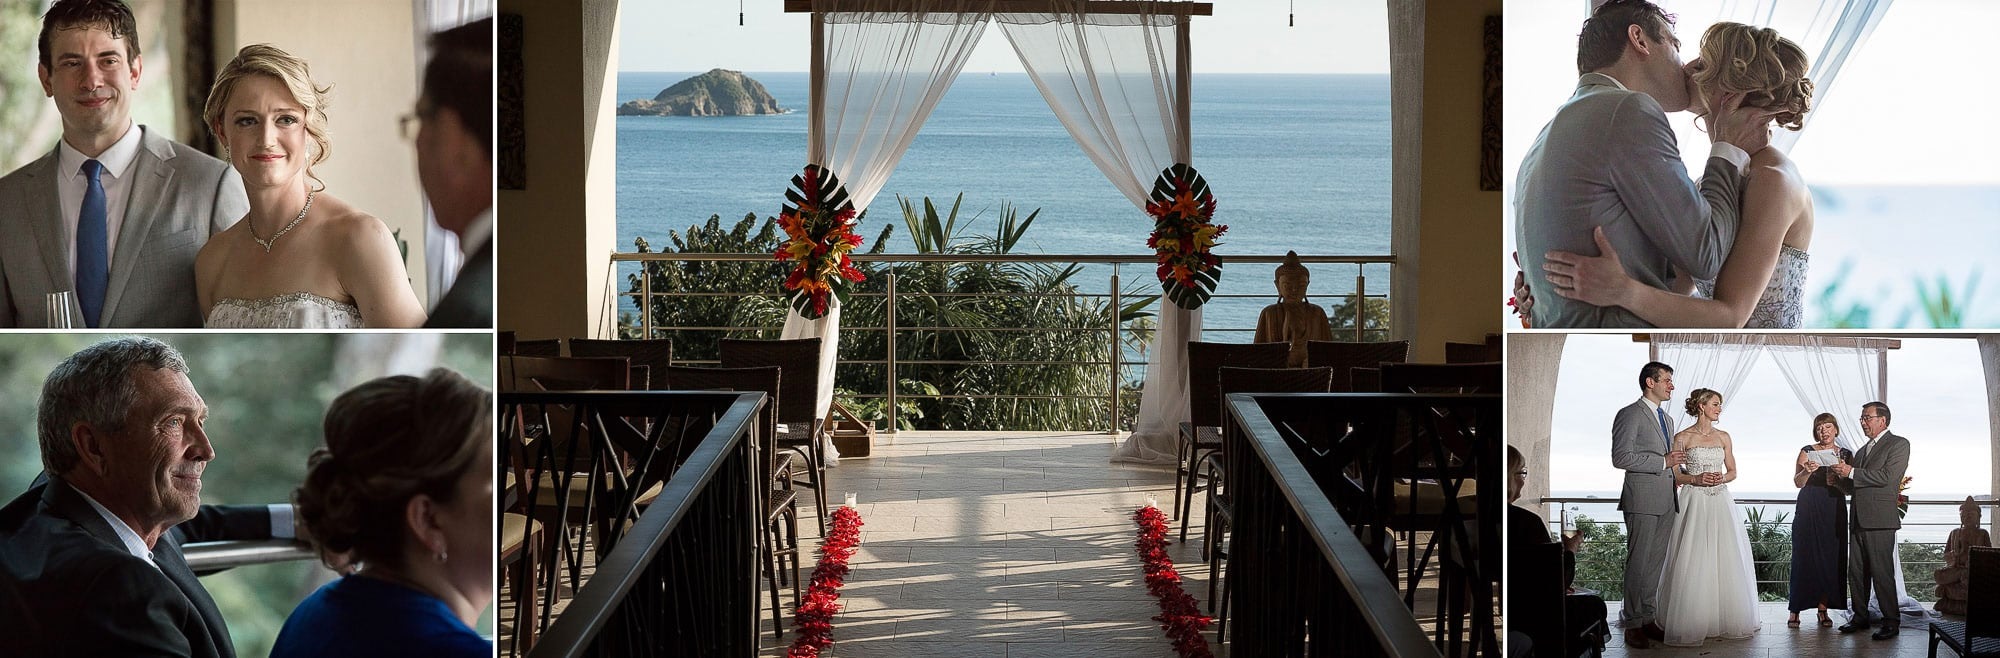 The epic view from the ceremony spot, perfect for an intimate wedding.